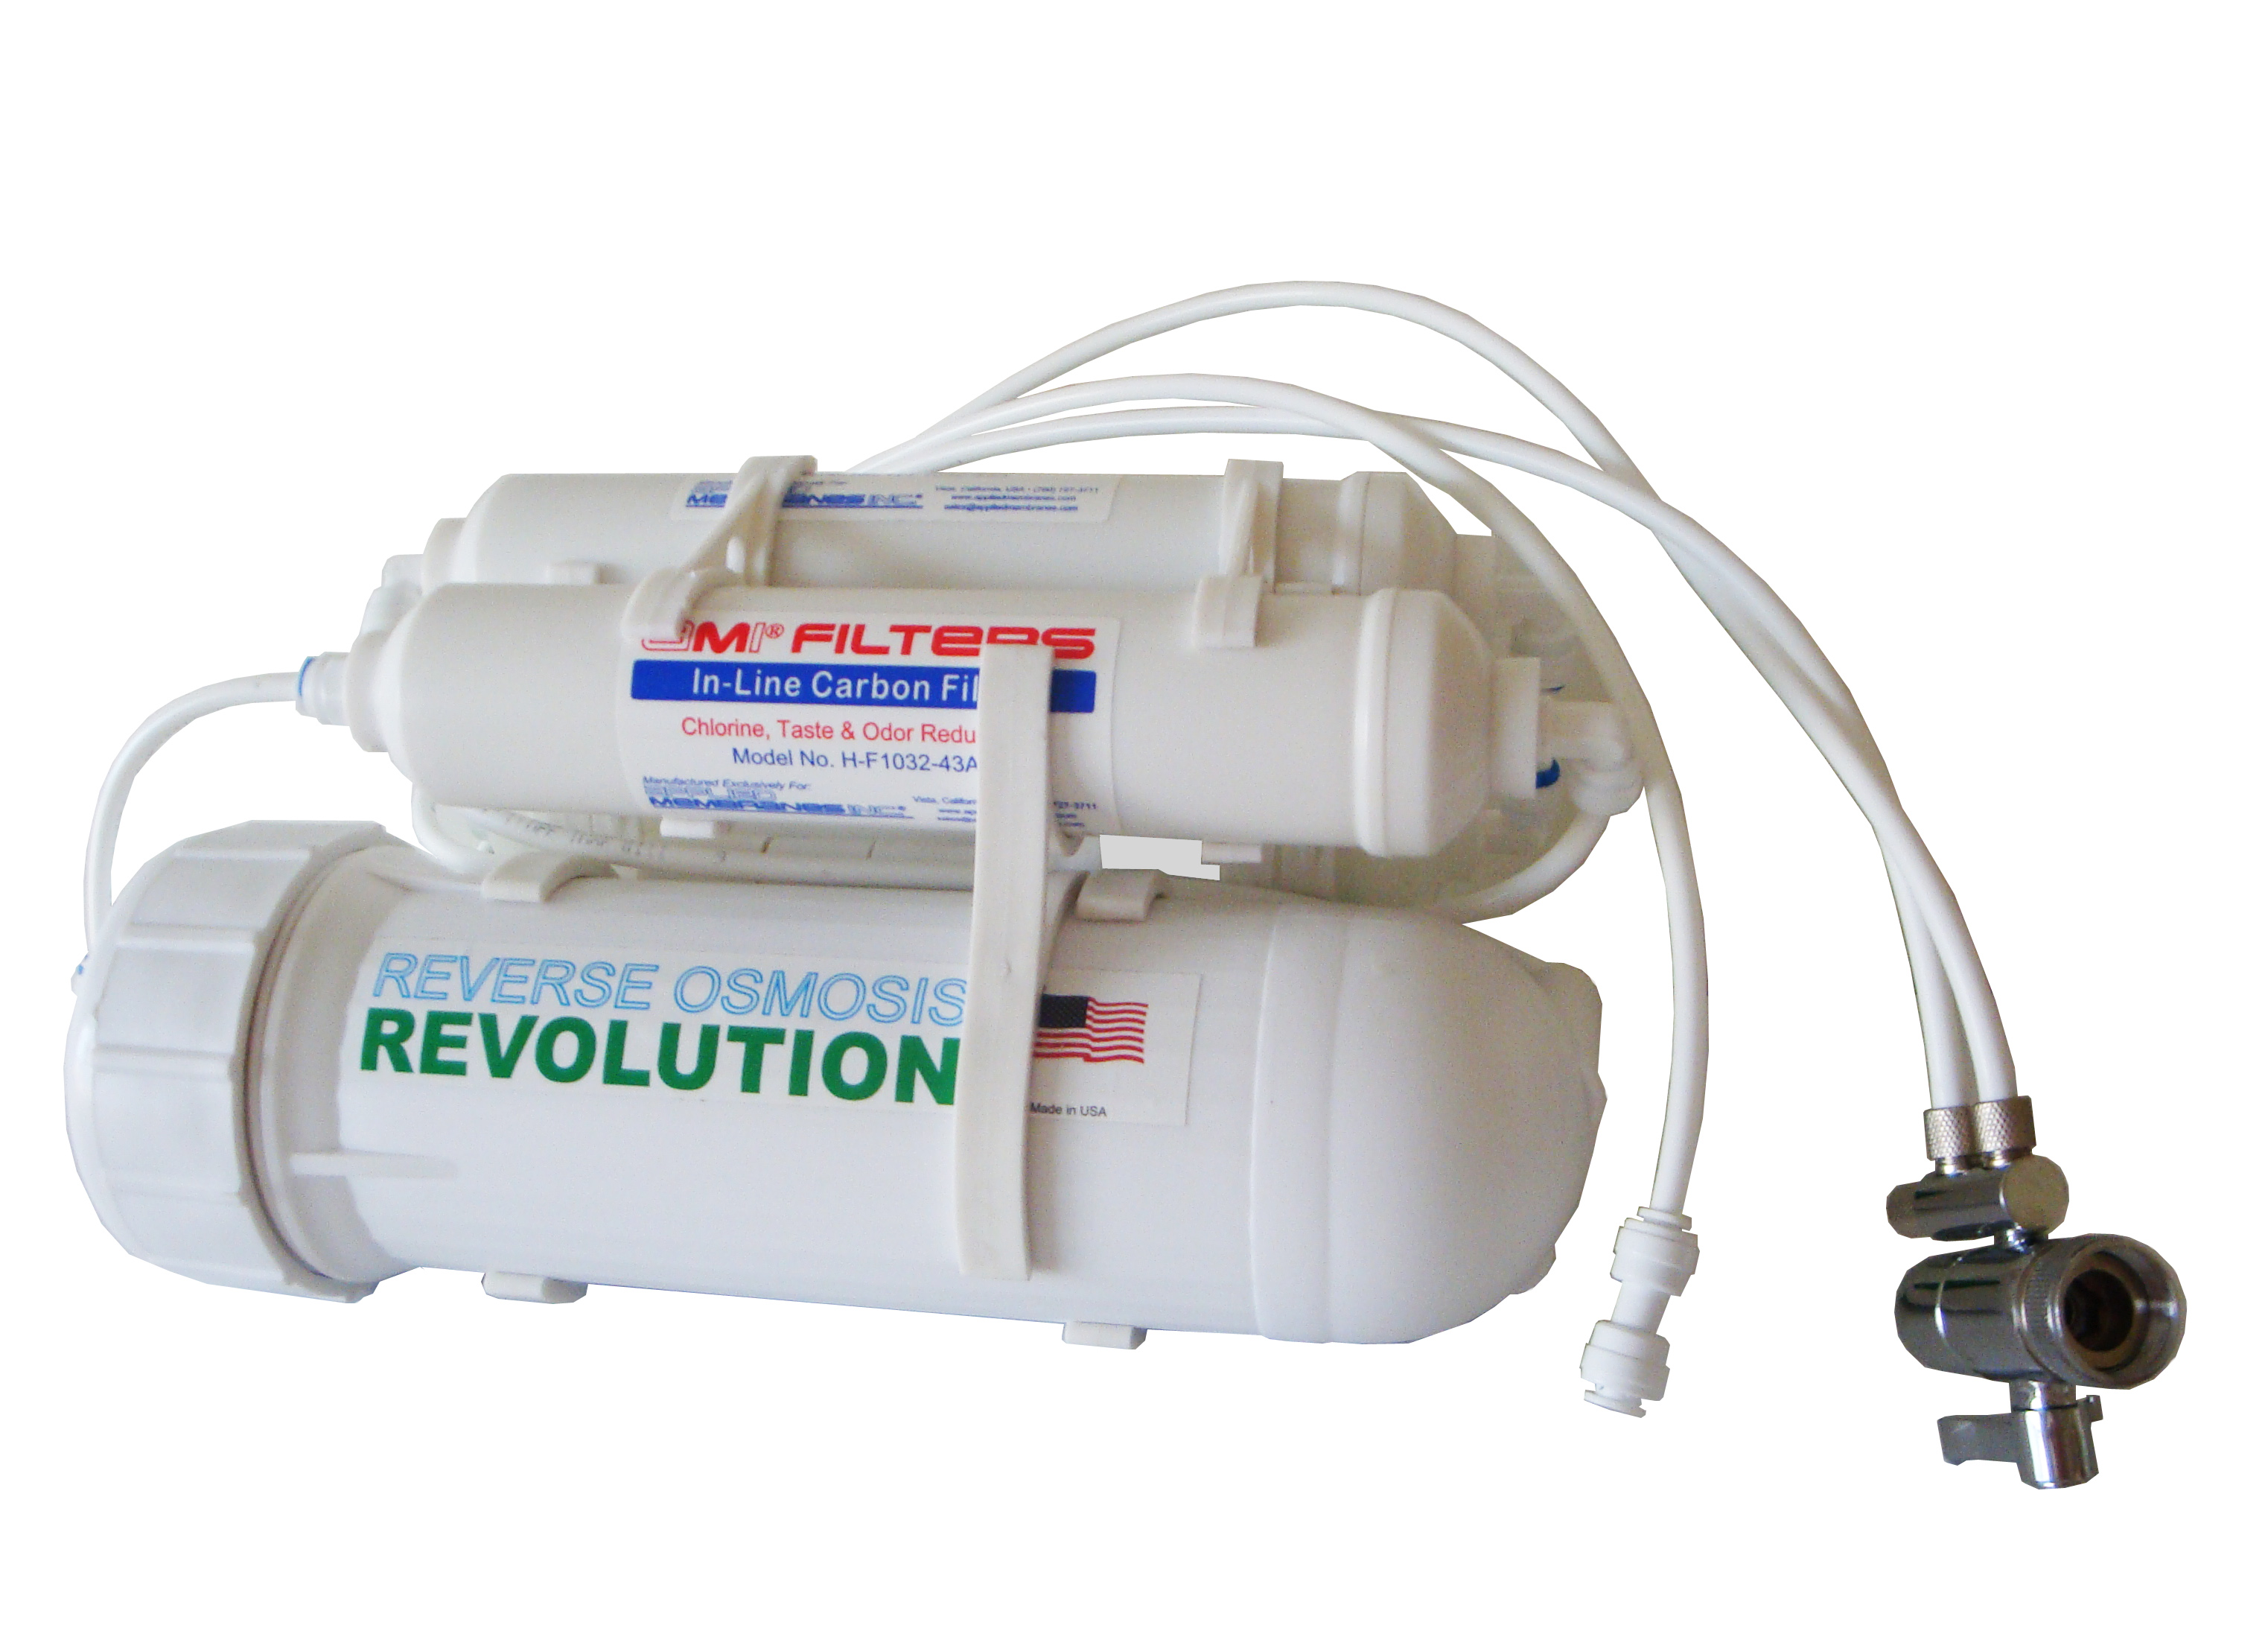 5 Stage Home Light Commercial Reverse Osmosis Revolution Water Purification System With Super